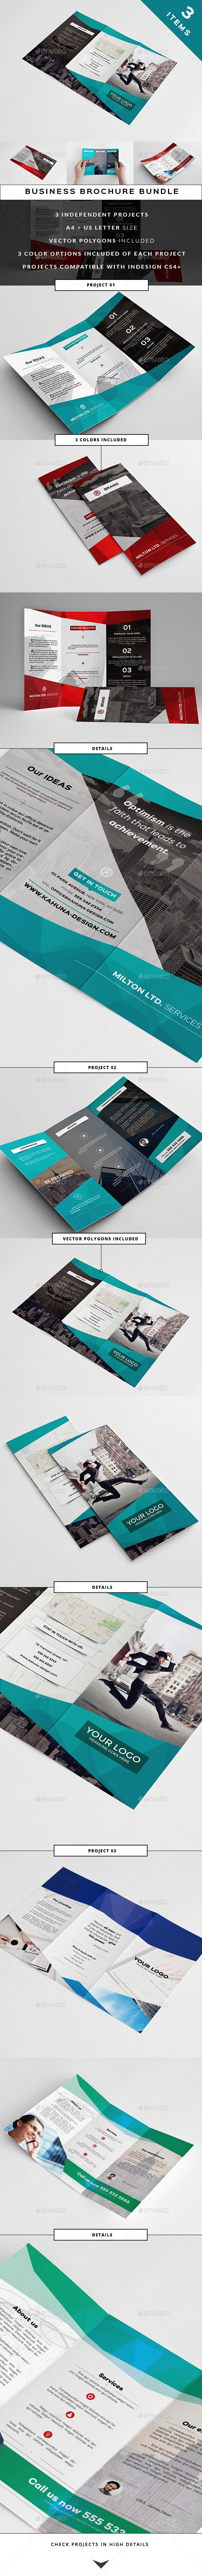 GraphicRiver Business Trifold Bundle 10909639